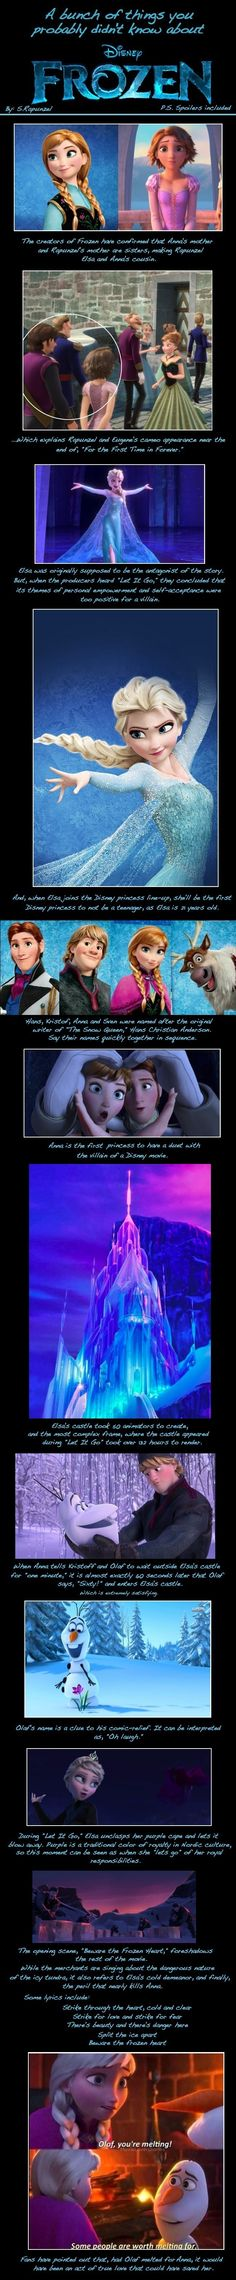 things you probably didnt know about Frozen infographic meme funny Imgur